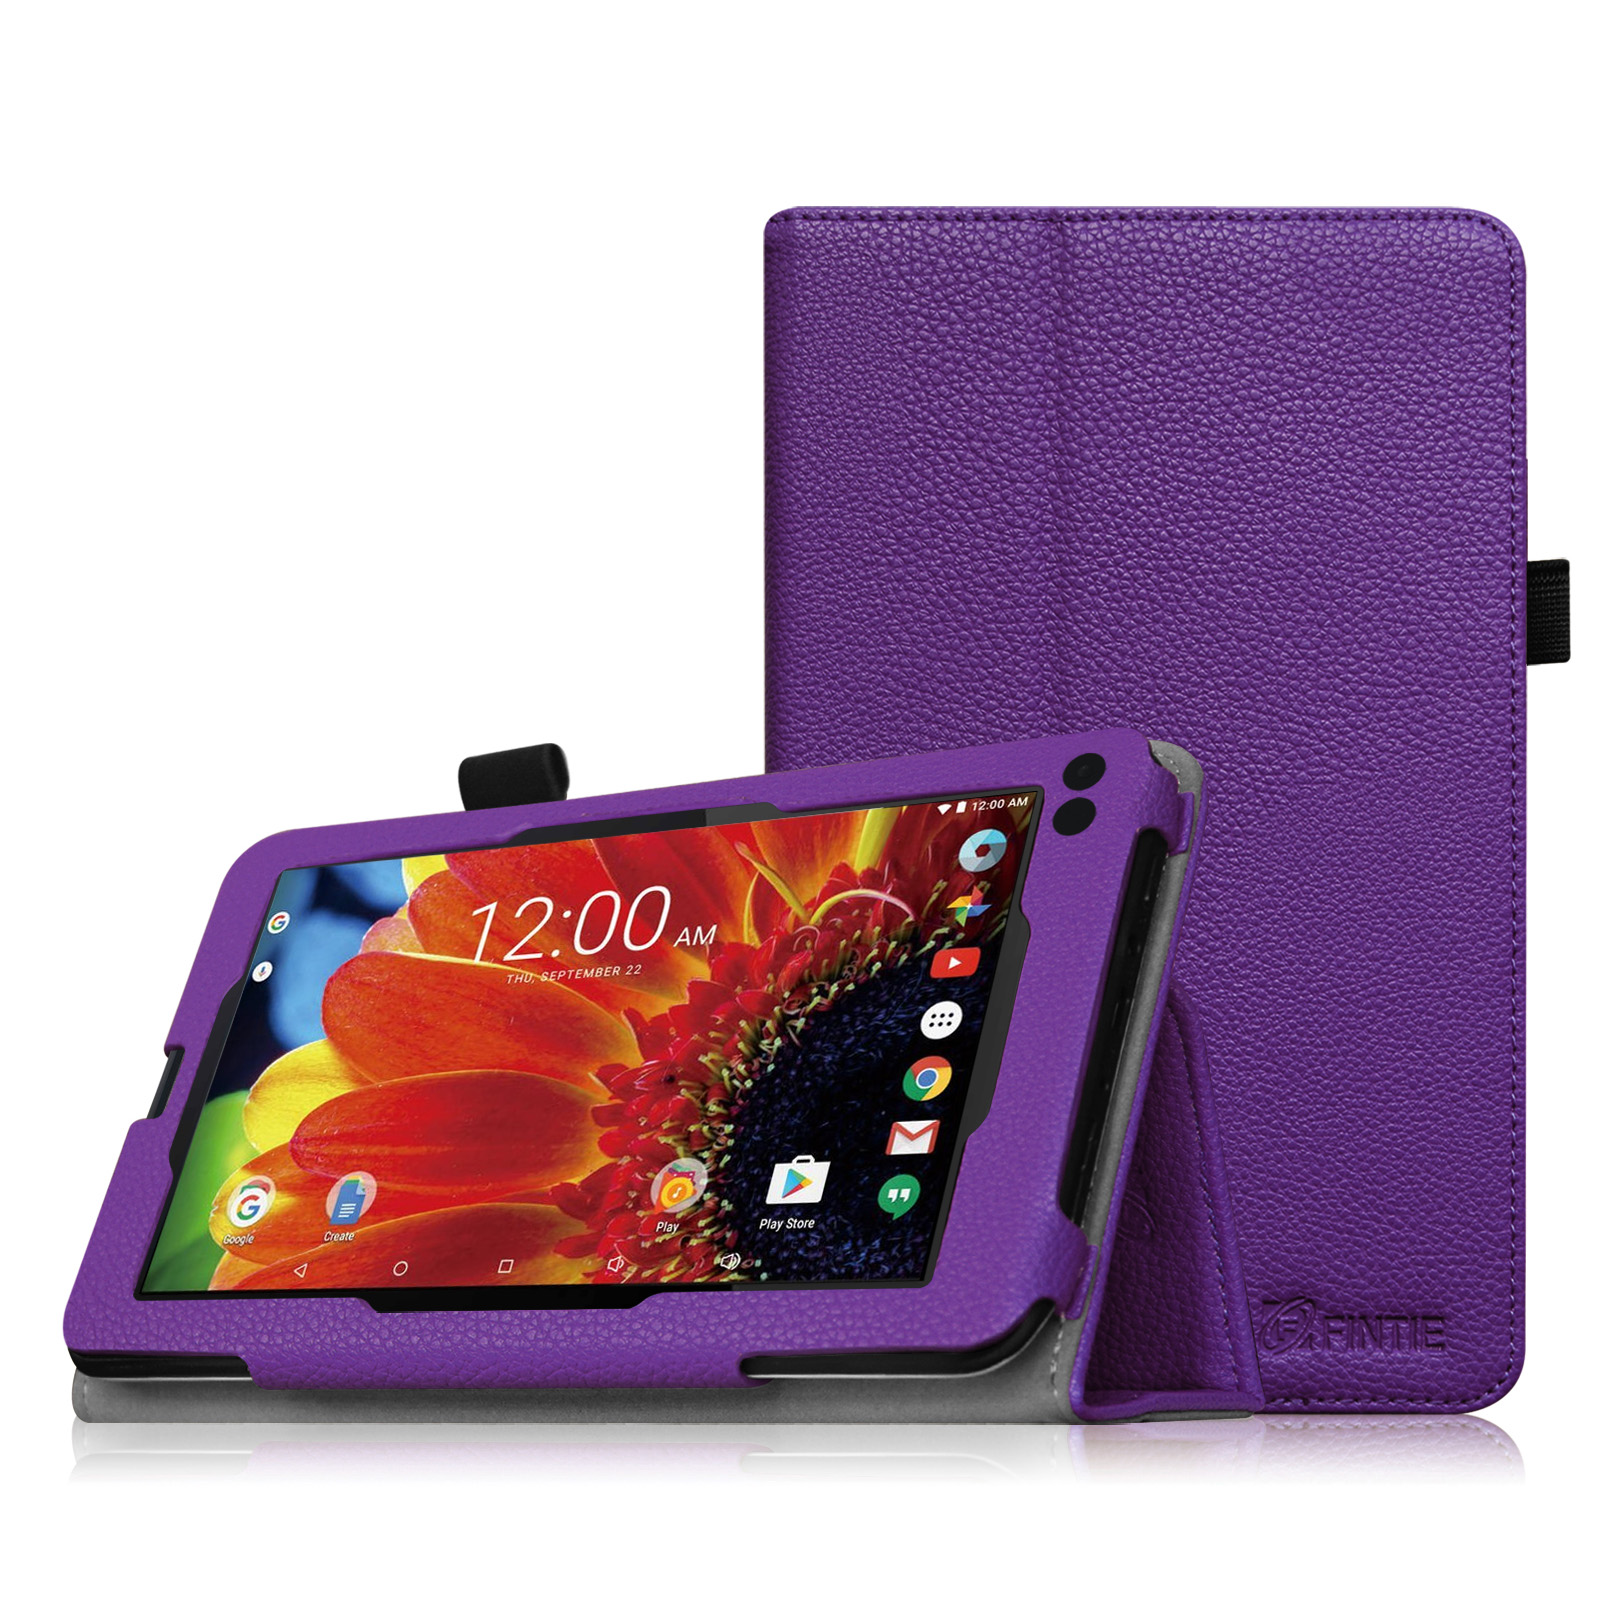 "Fintie PU Leather Case Folio Cover for RCA 7"" Voyager III / Voyager II / Voyager Pro Tablet, Violet"